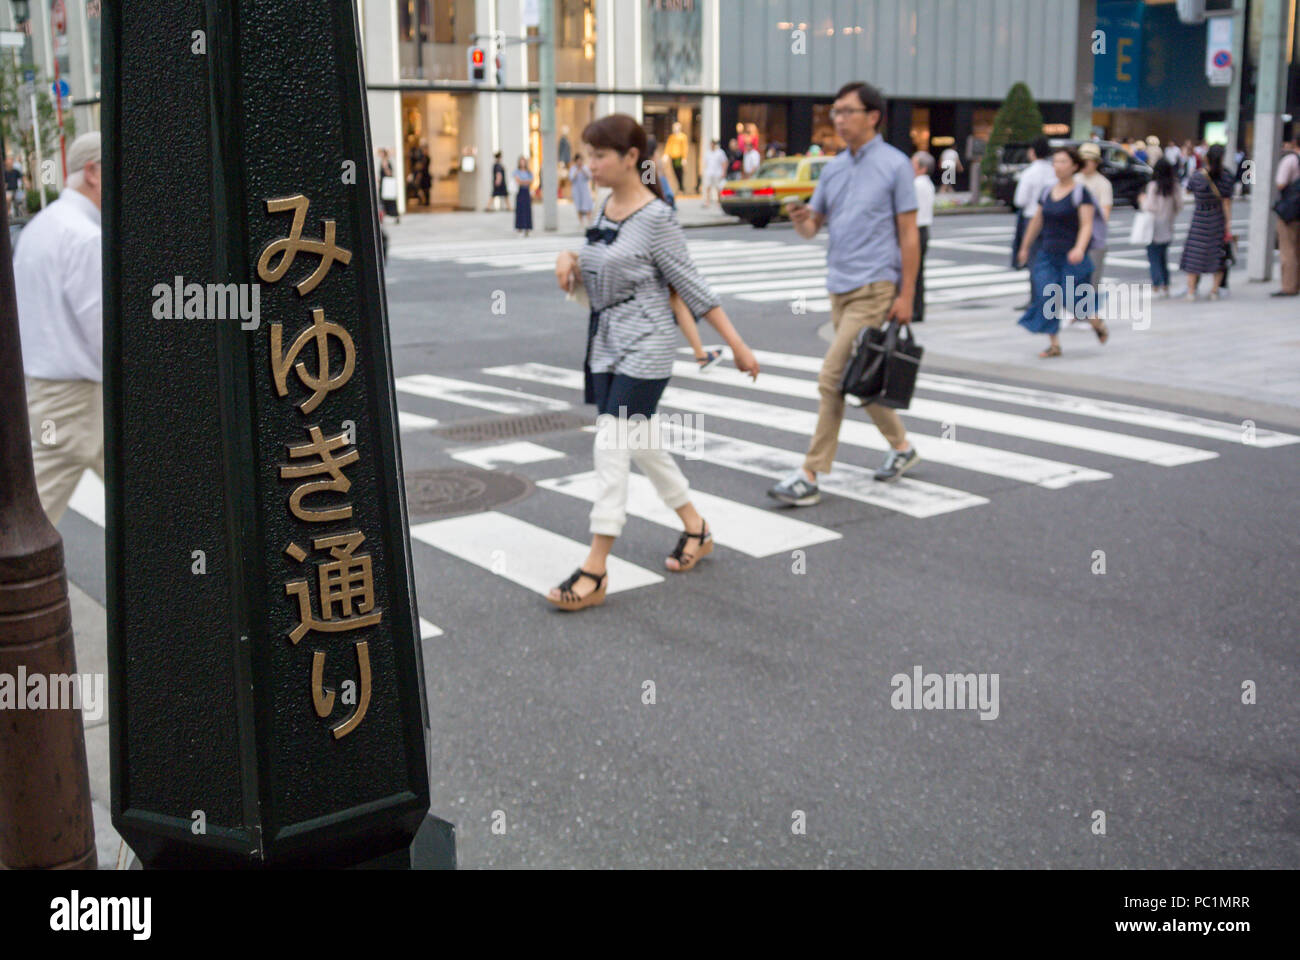 Japanese people crossing a intersection of ginza, Miyuki dori street, fashion and bussiness district in tokyo, japan, 2018 - Stock Image